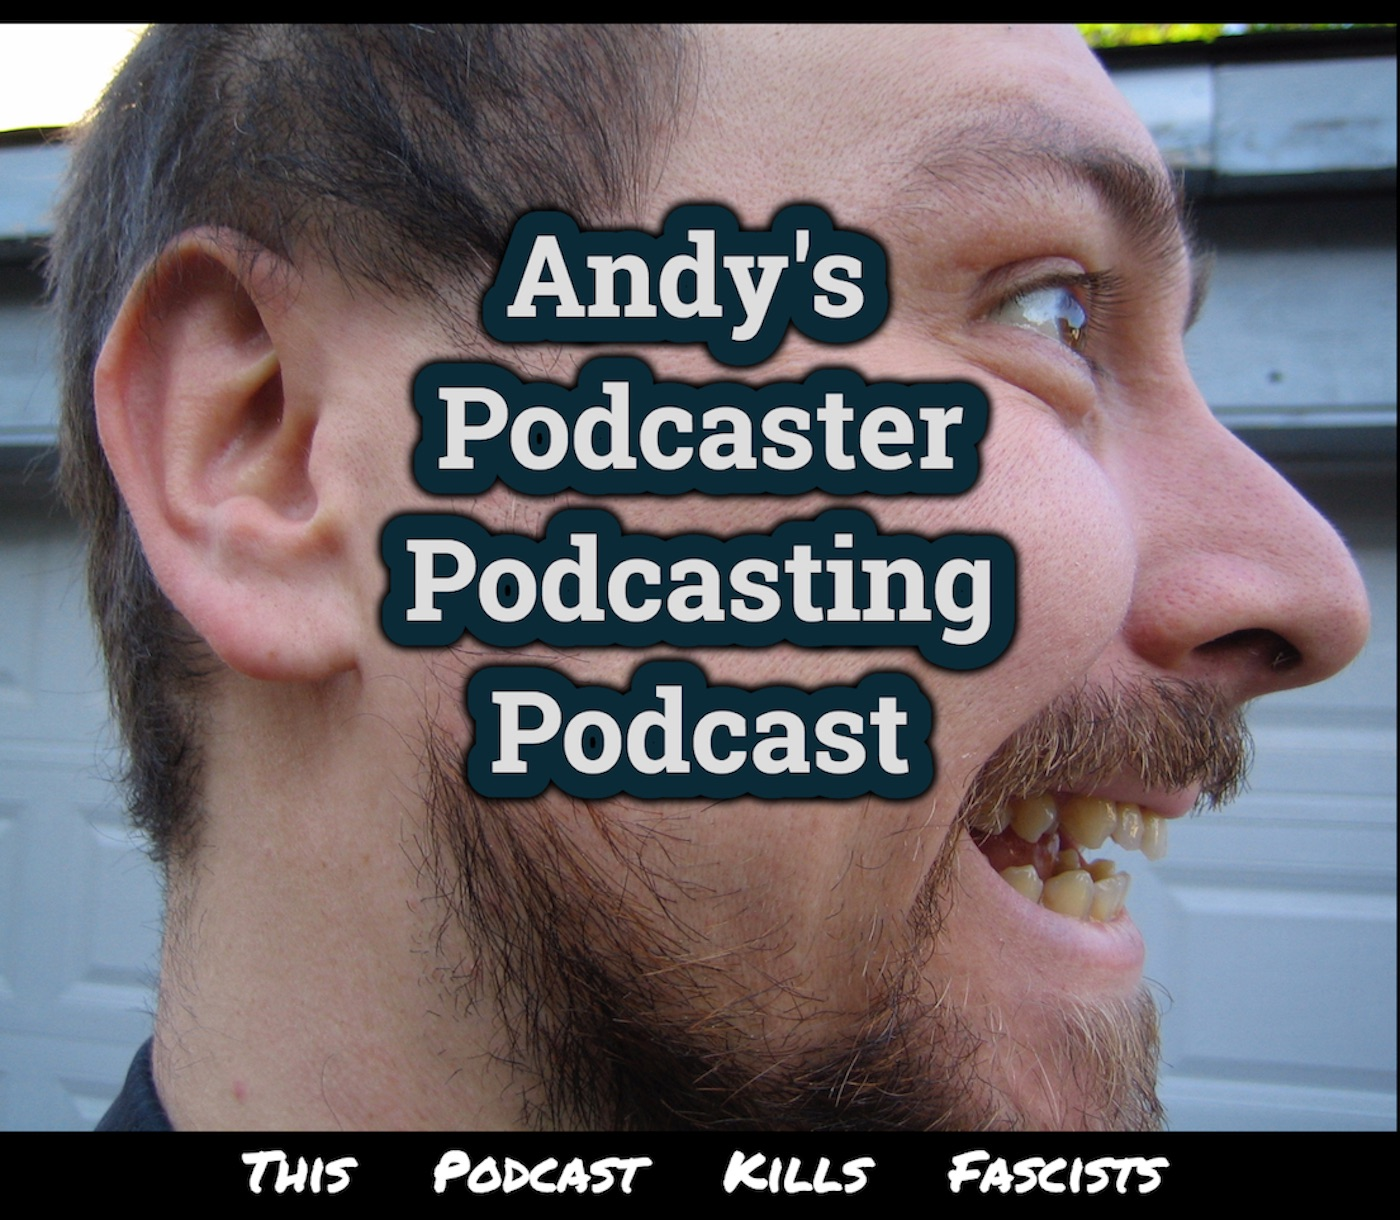 Andy's Podcaster Podcasting Podcast